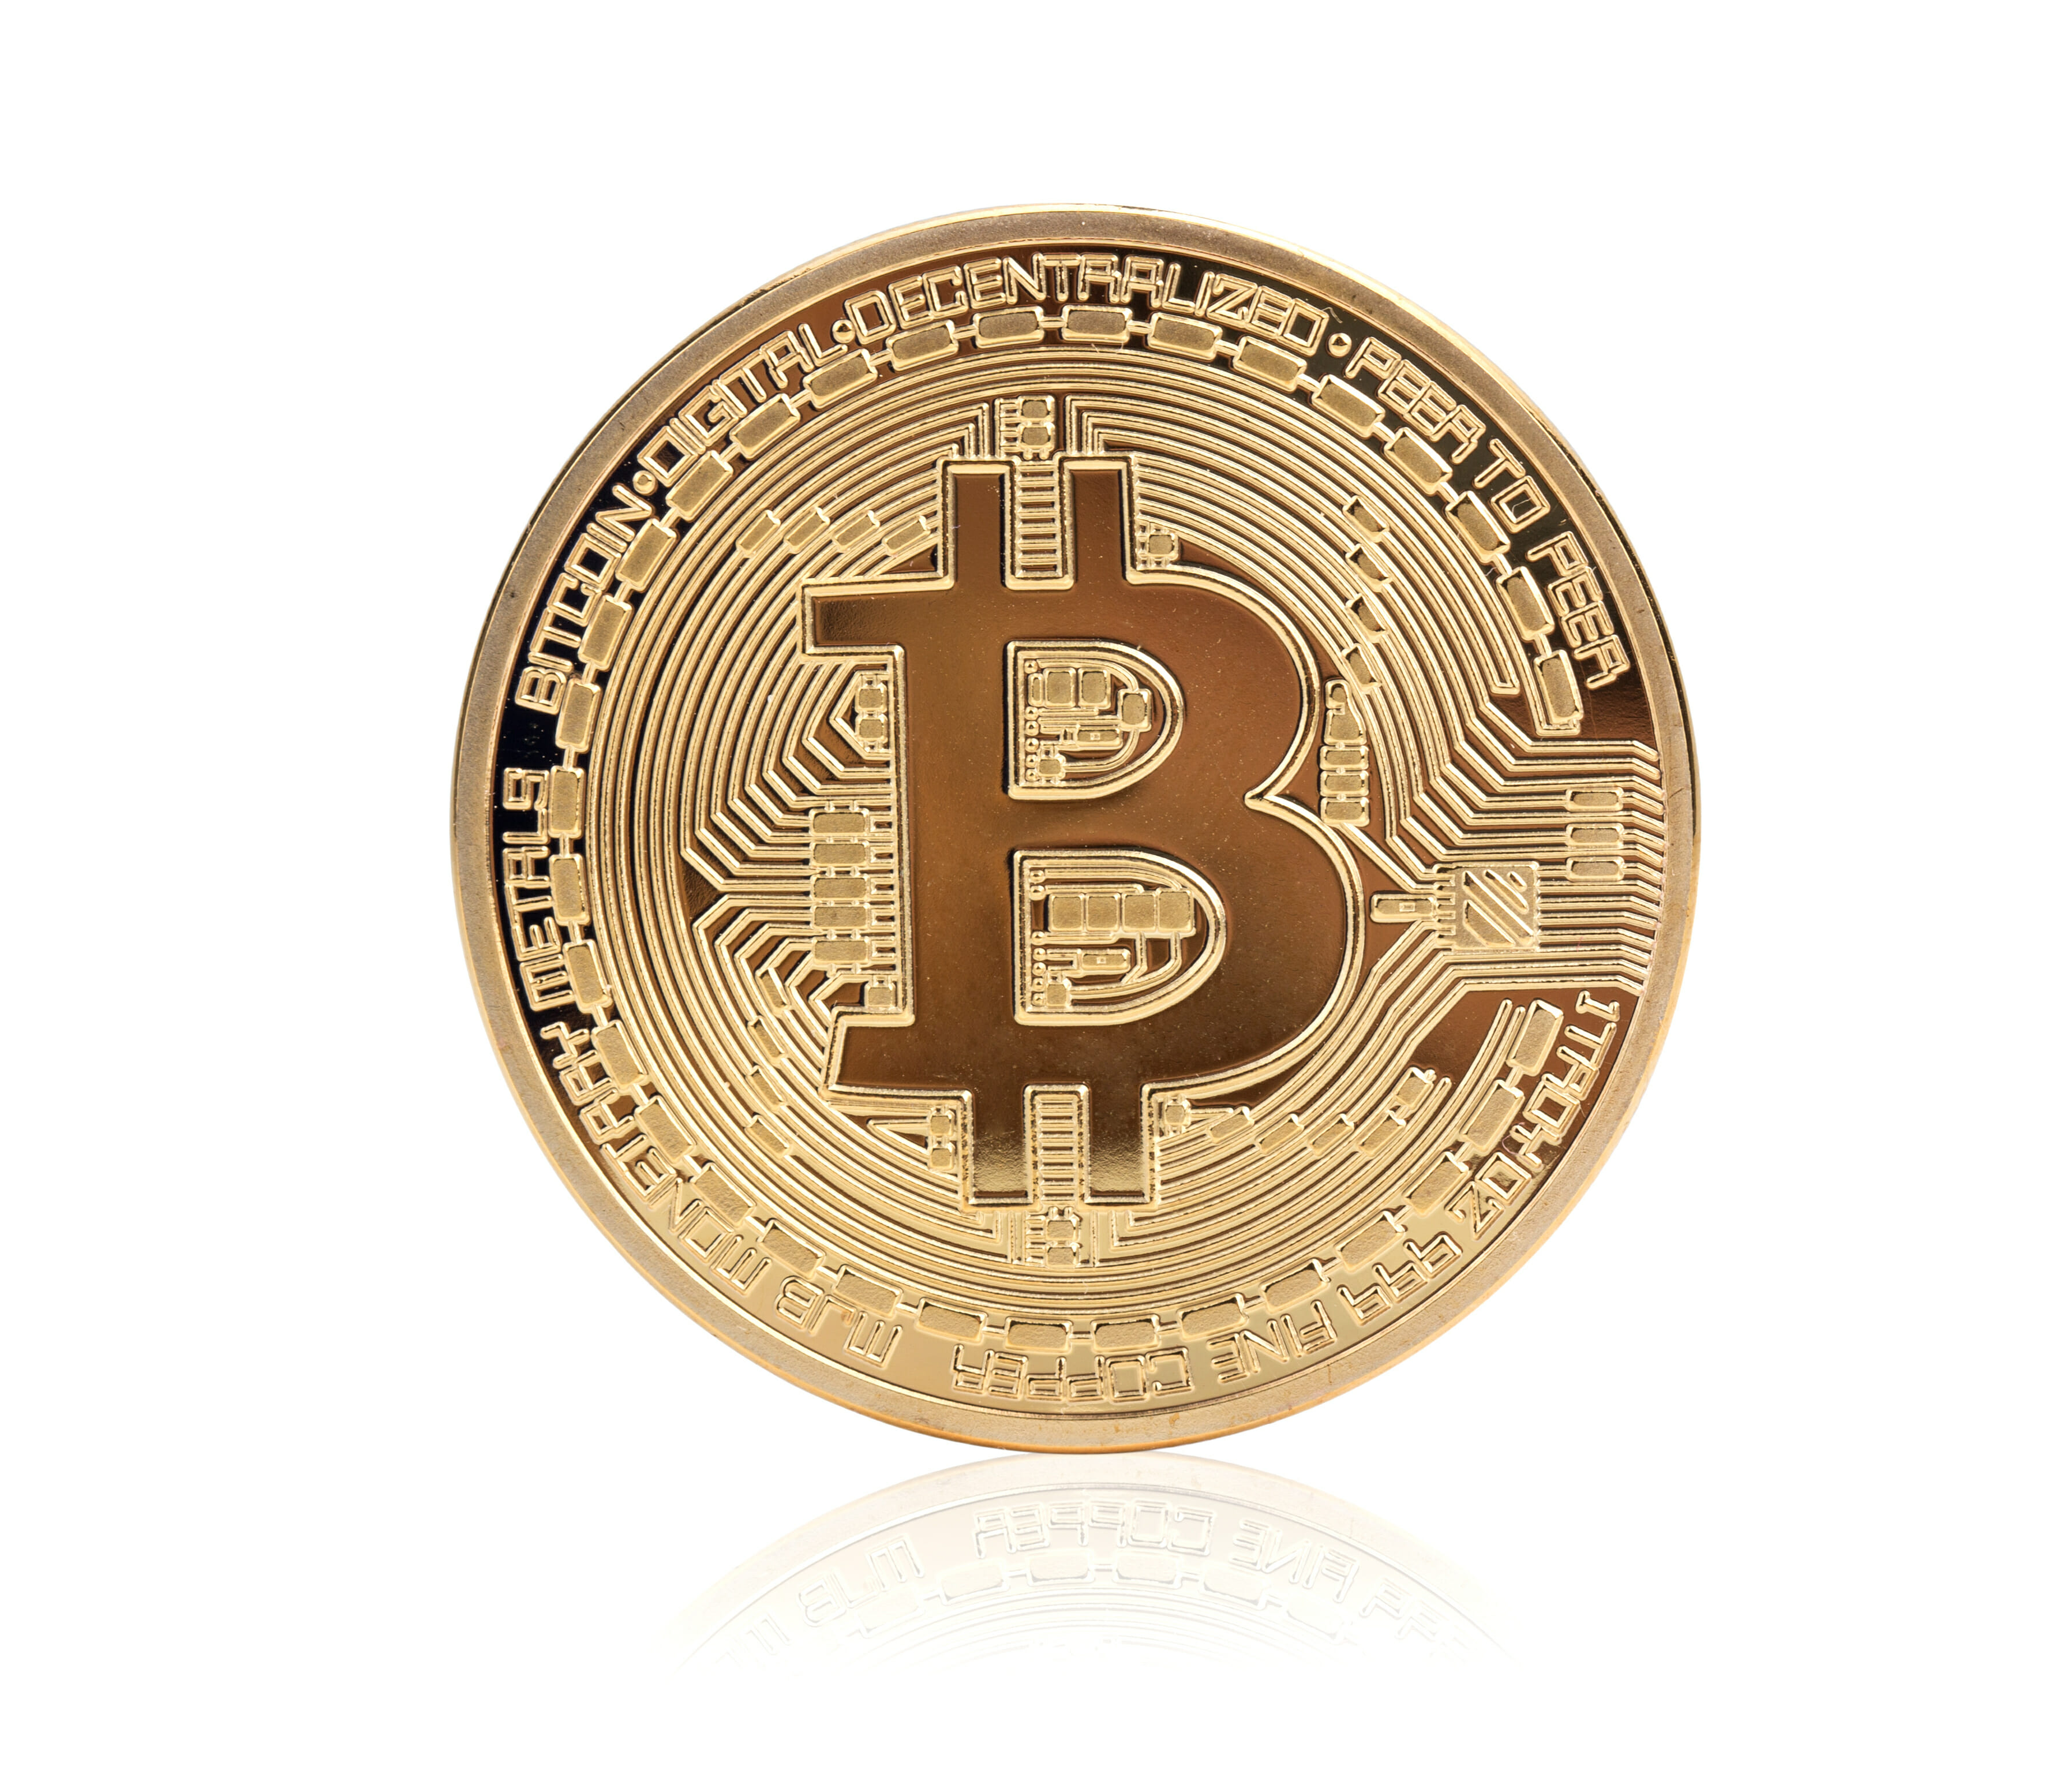 https://www.cryptoworldjournal.com/first-us-bitcoin-etf-could-hit-set-limit-on-futures-contracts/#respond